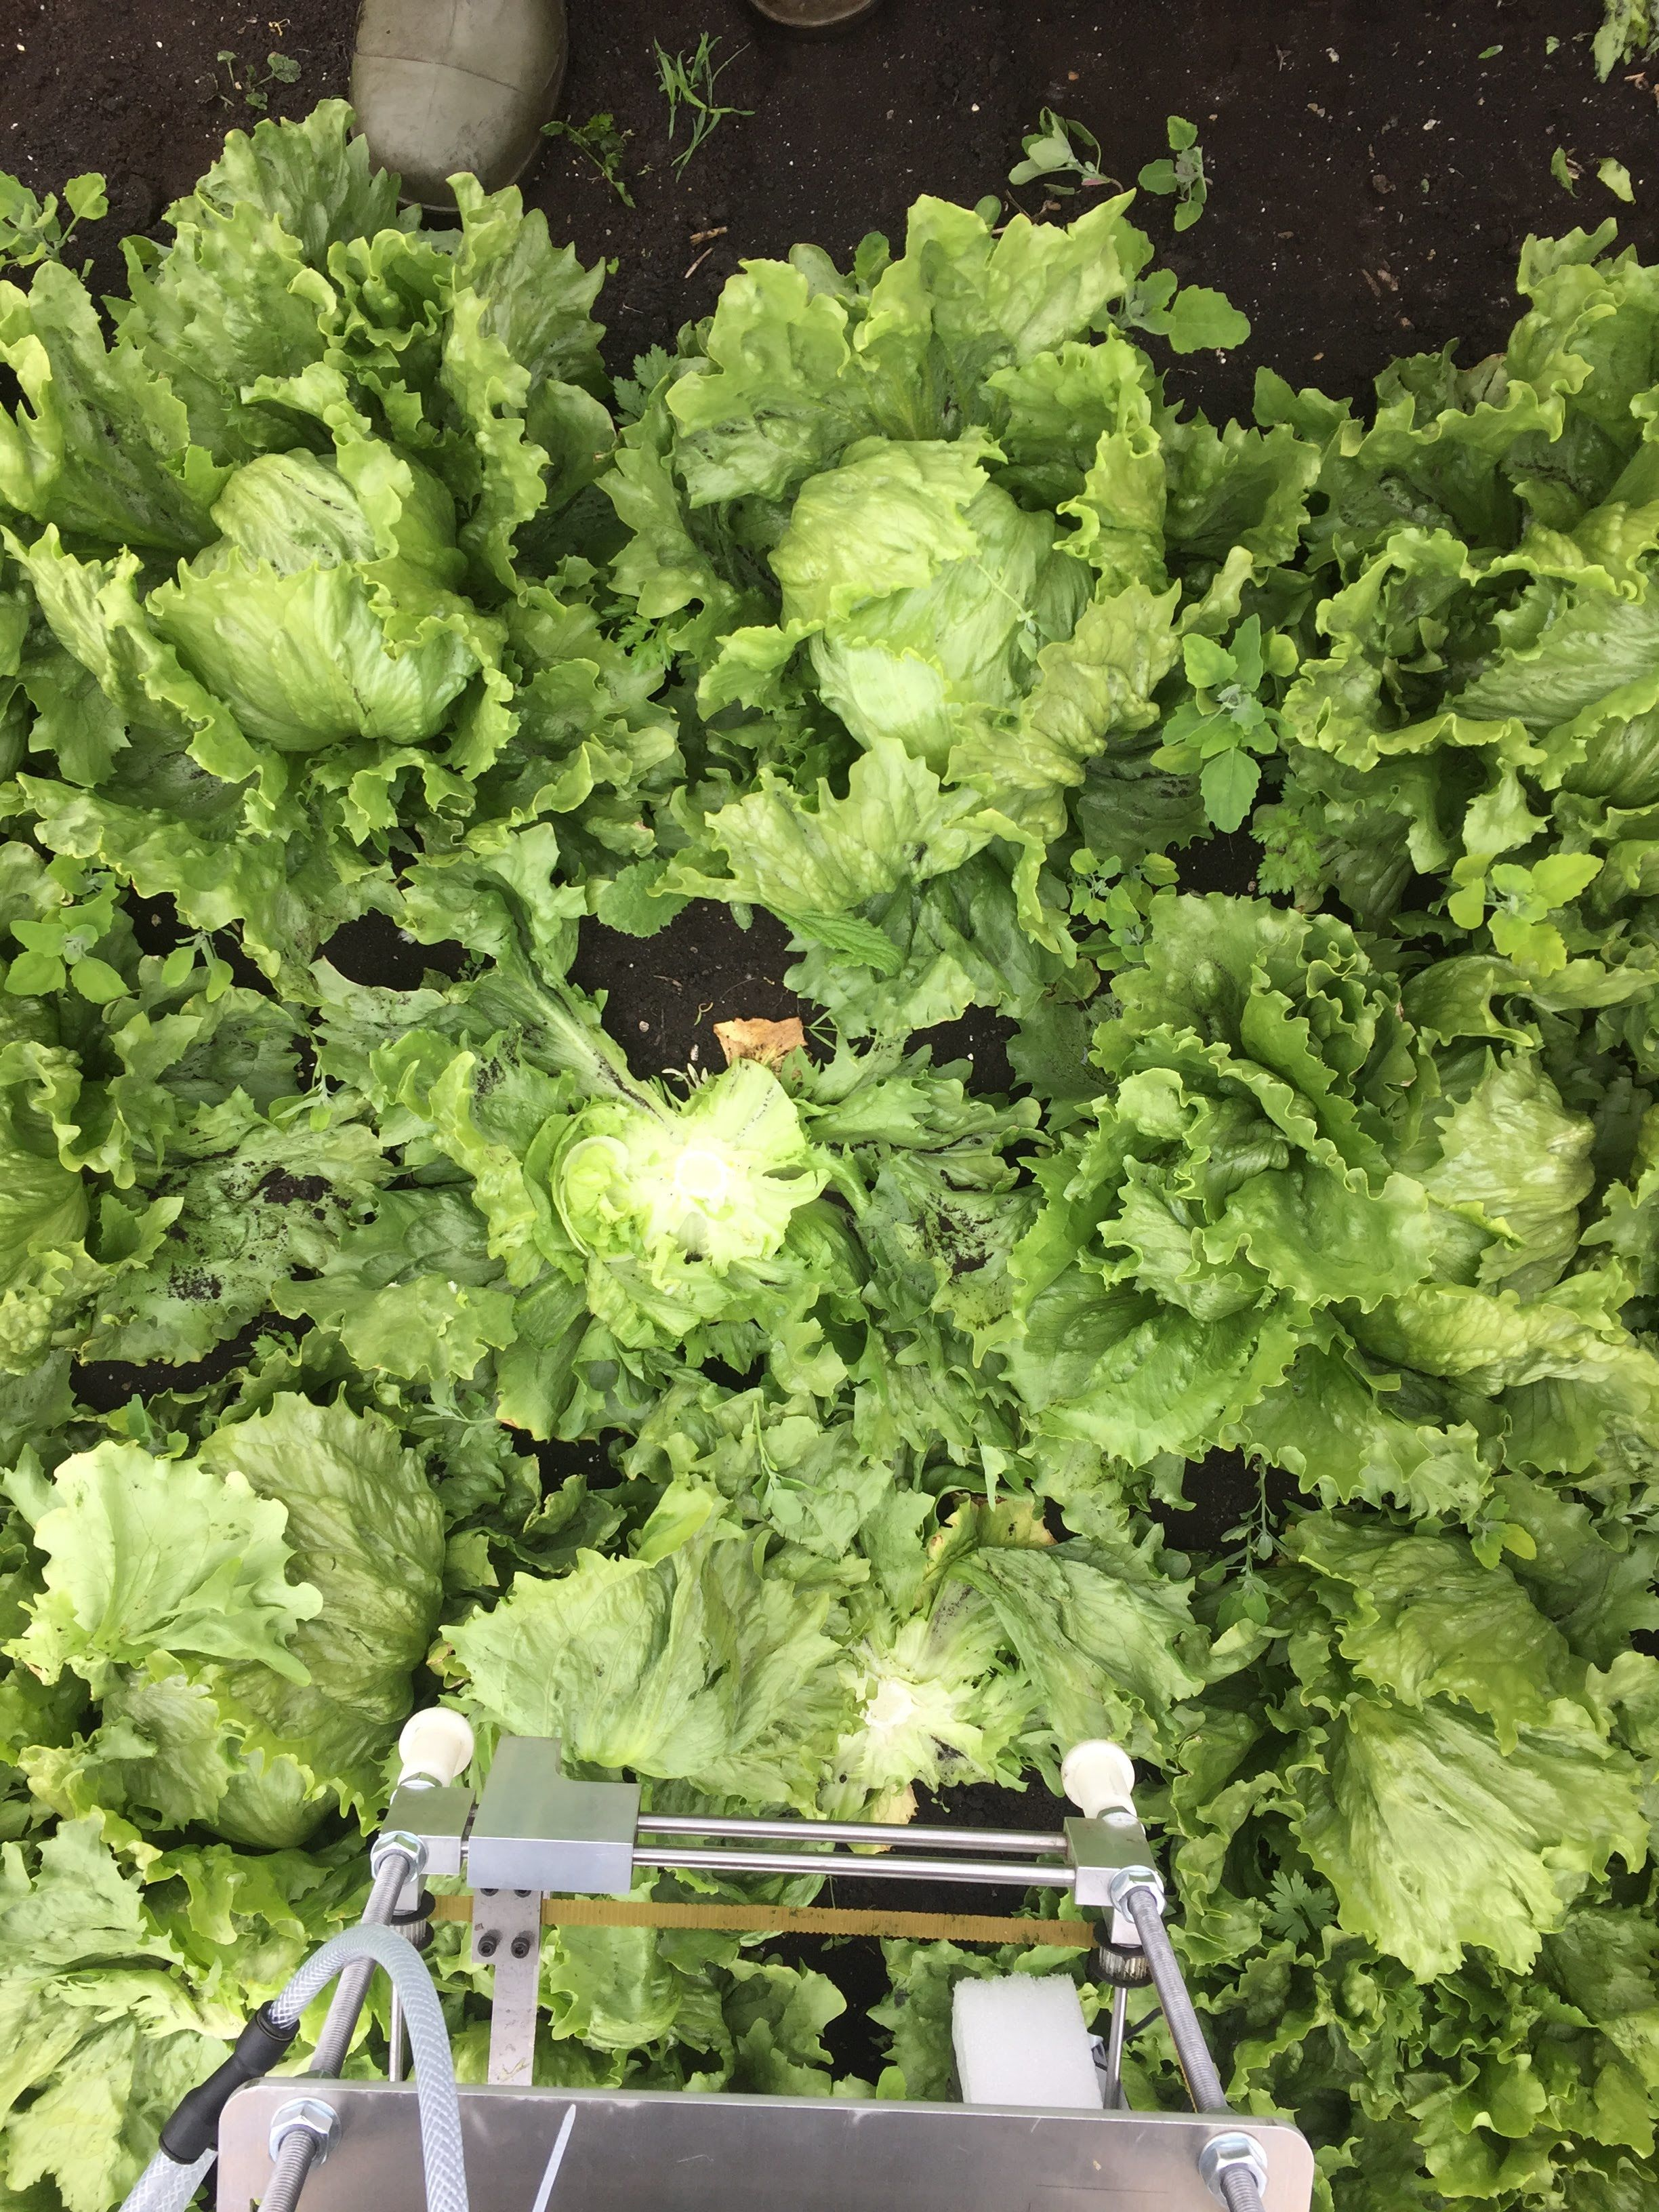 Researchers develop robot that can identify and pick lettuce